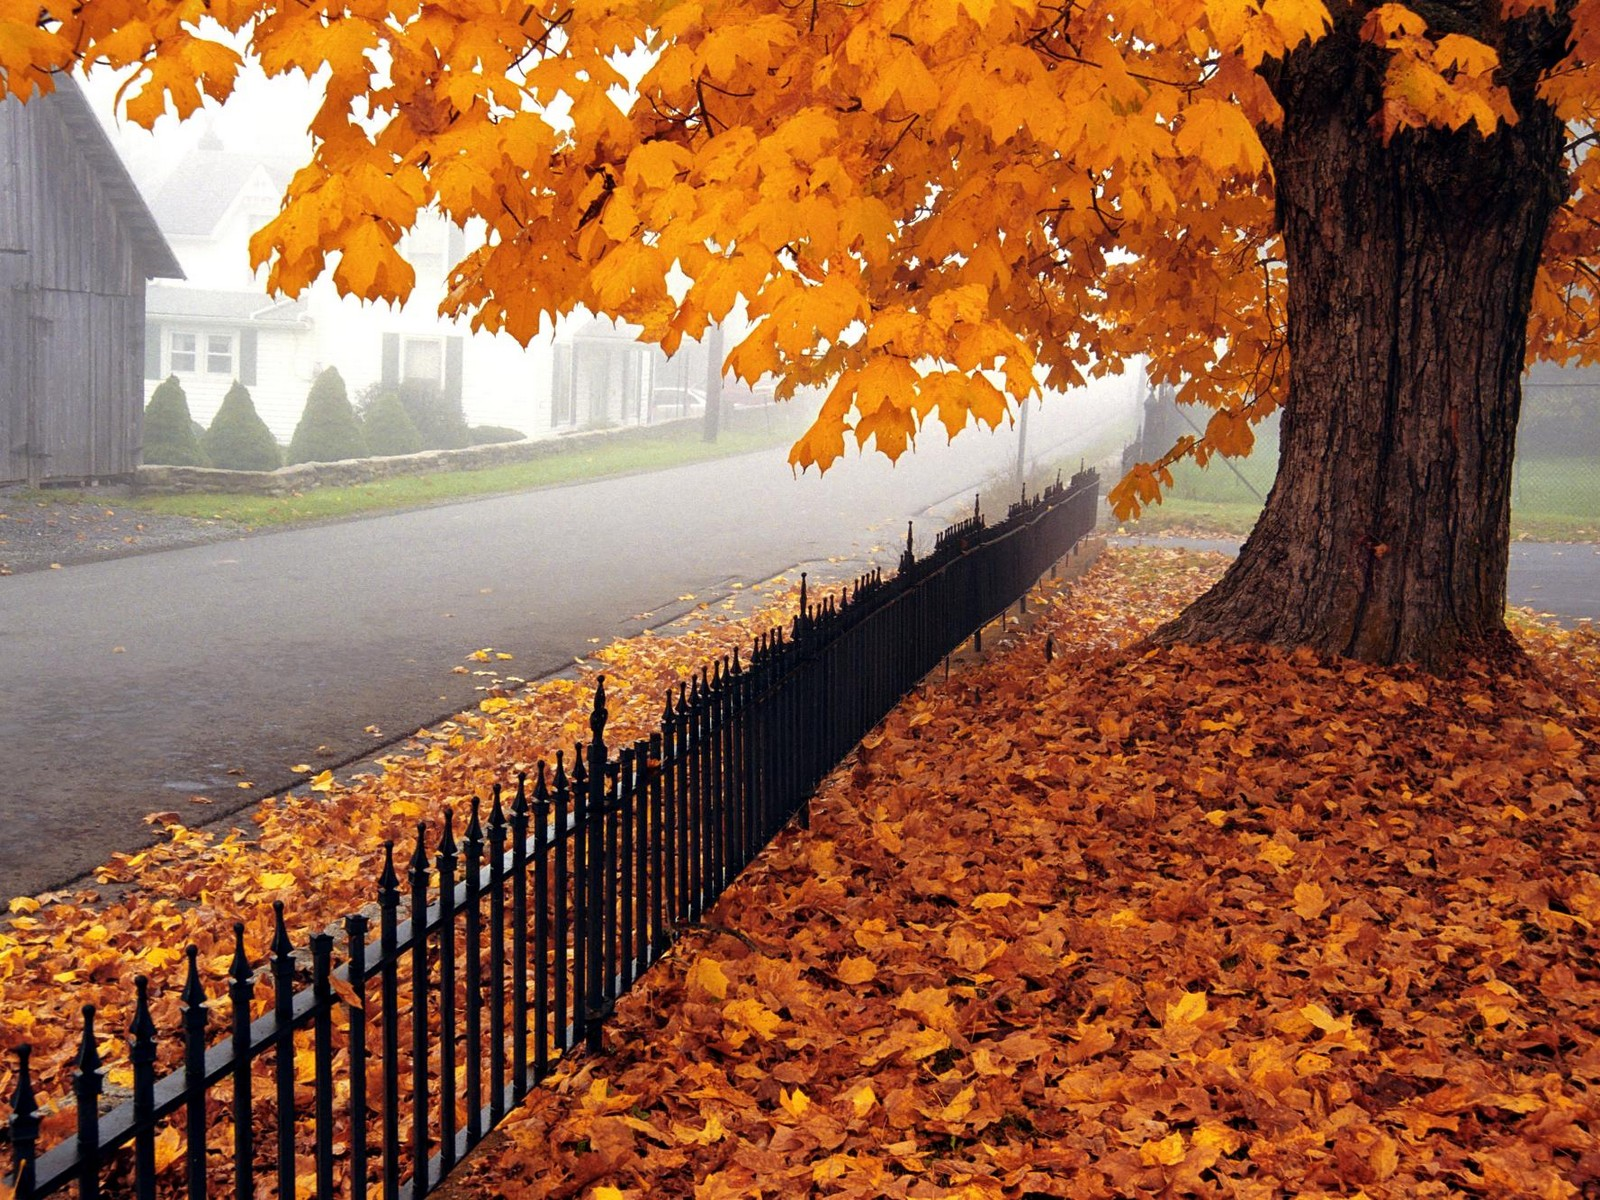 Autumn in the suburbs, wallpaper, wood, nature.